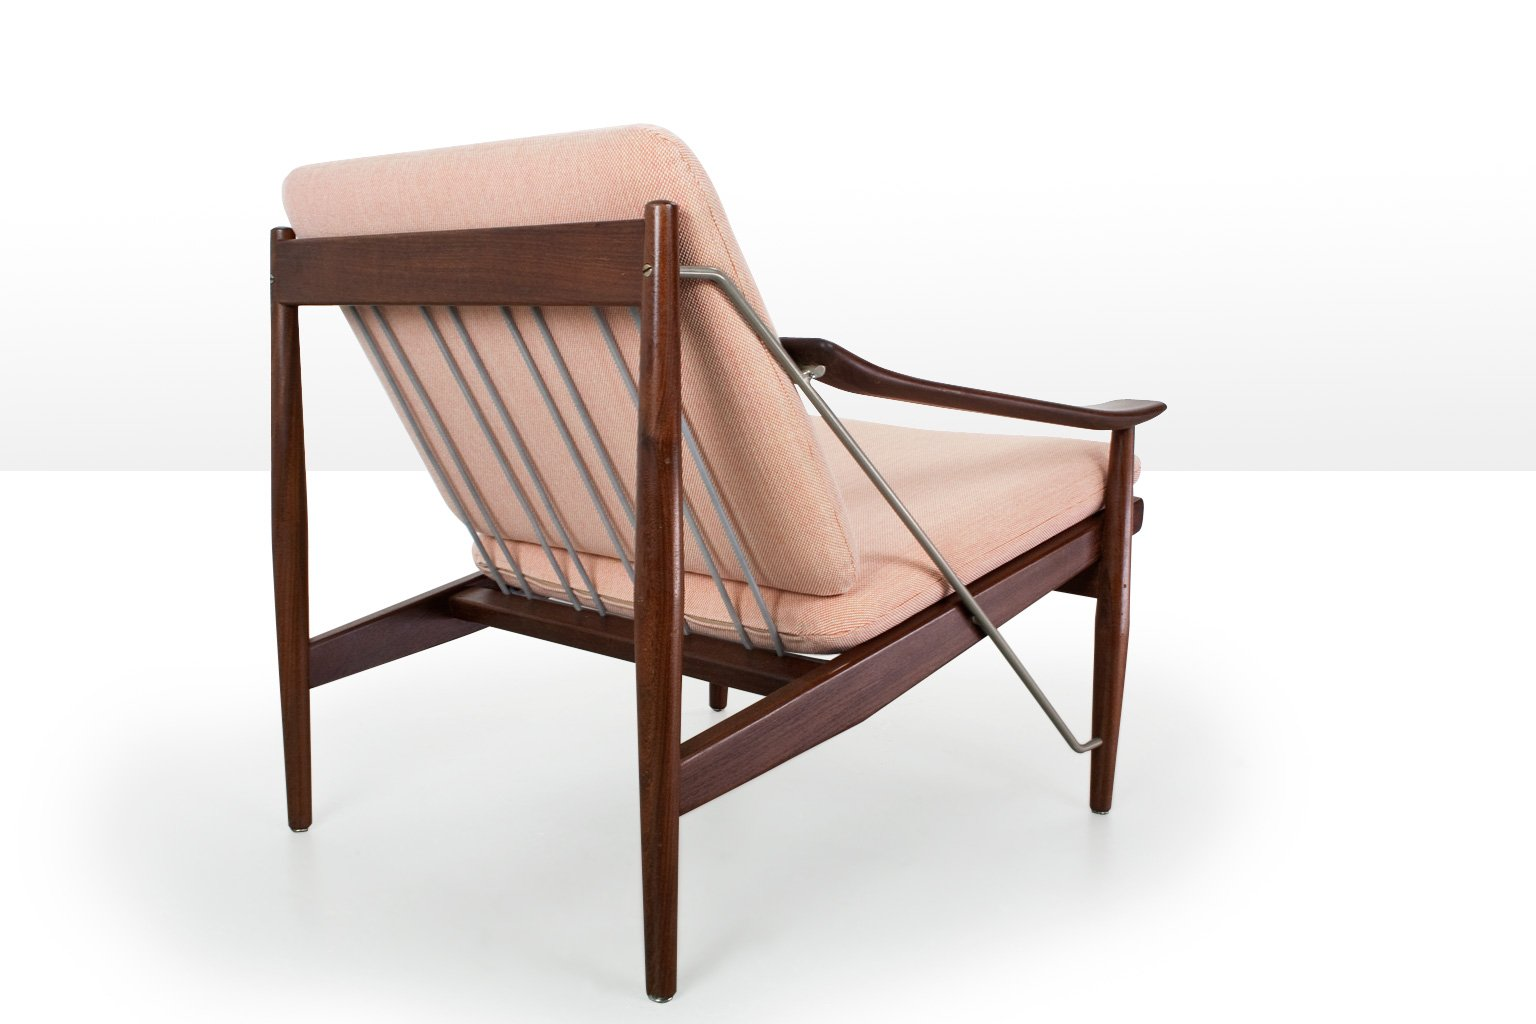 danish modern lounge chair in teak 1950s for sale at pamono. Black Bedroom Furniture Sets. Home Design Ideas